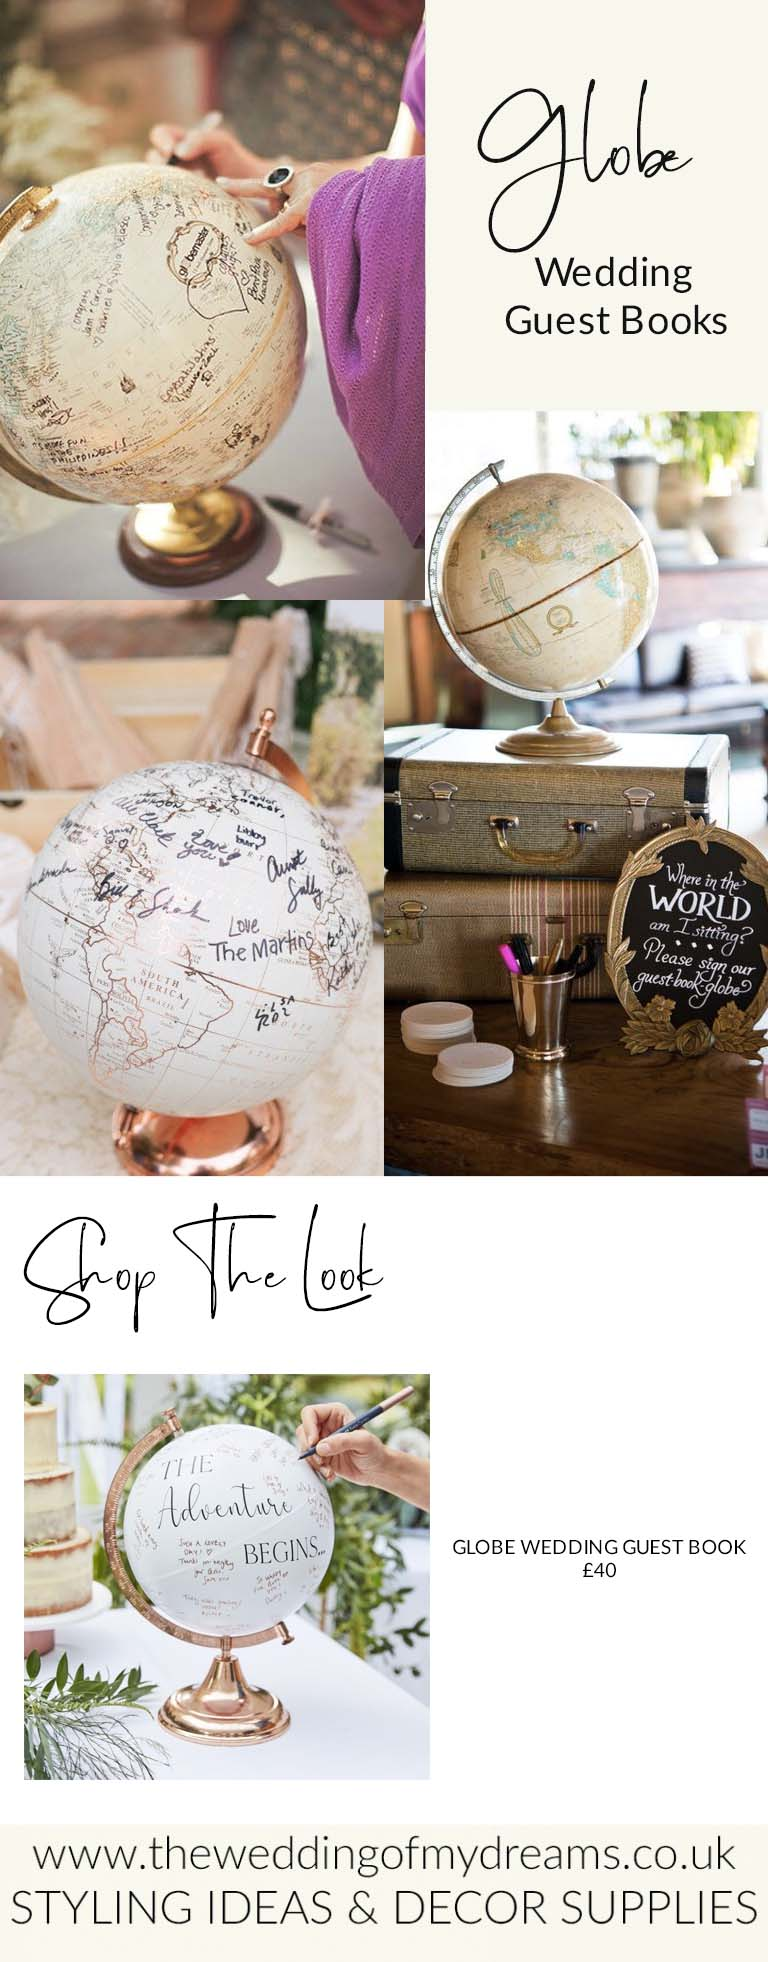 GLOBE WEDDING GUEST BOOKS FOR SALE